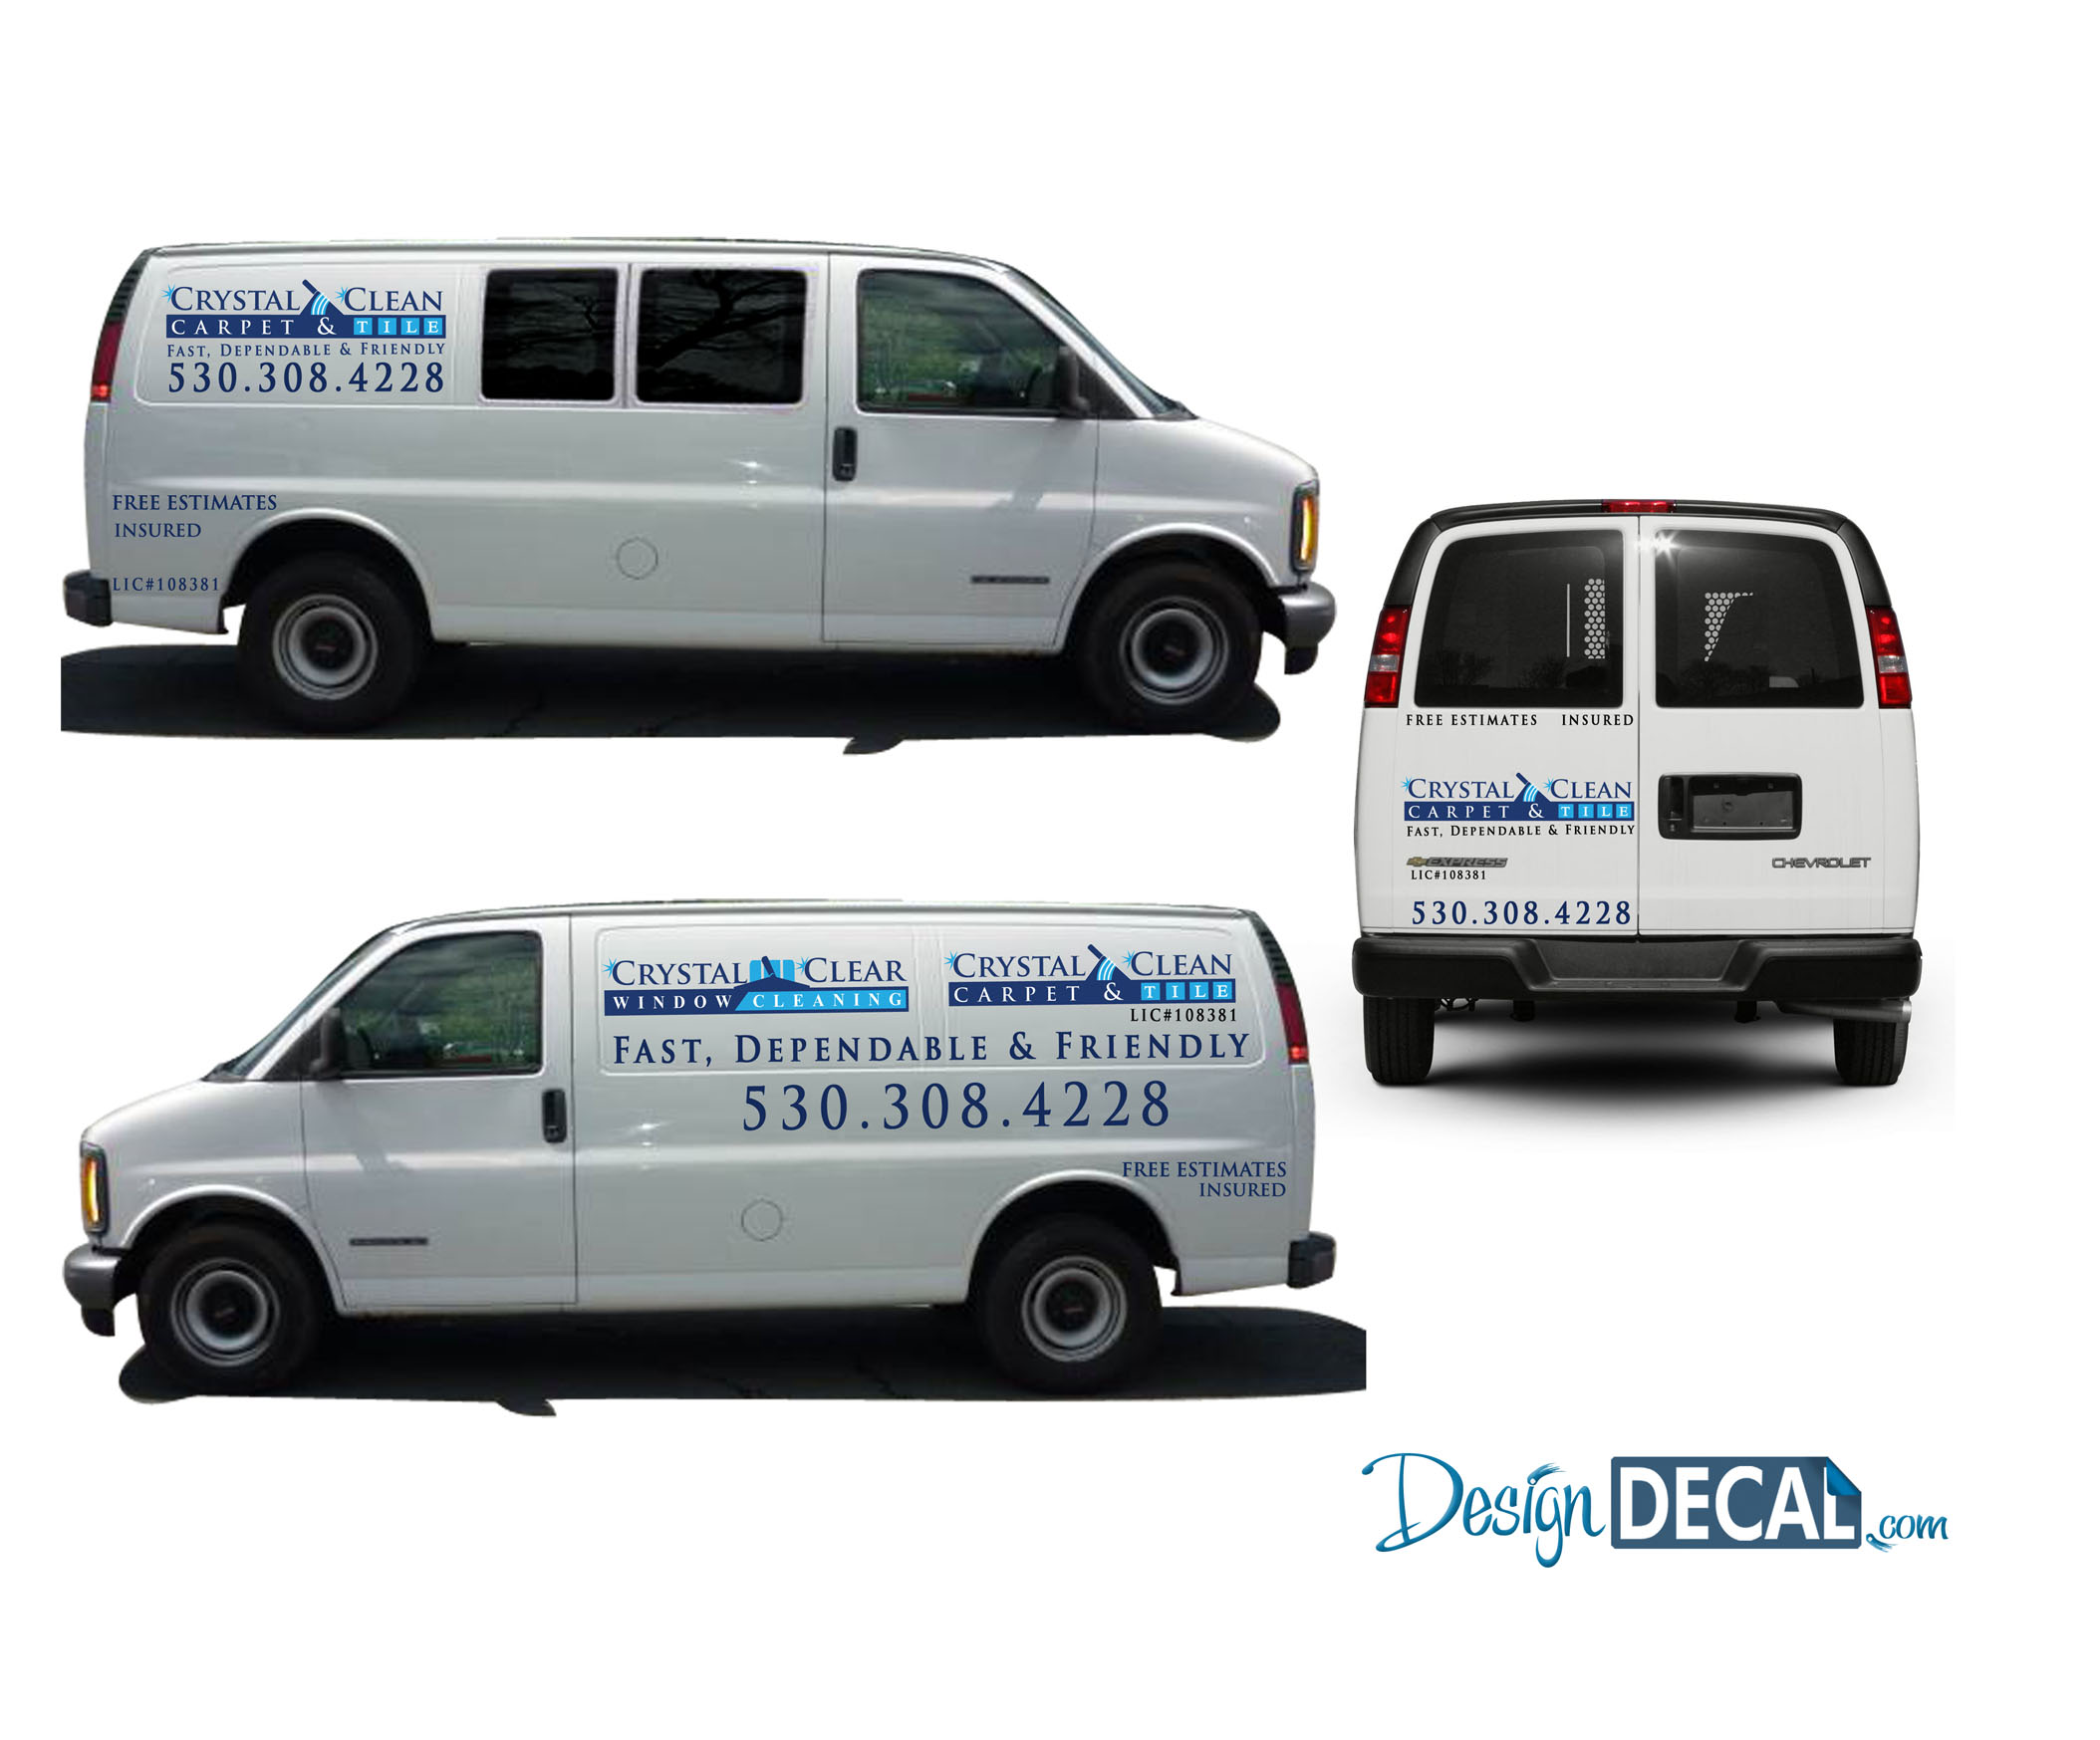 Advertise while you drive! Designed to what the customer loved! Another happy Client!